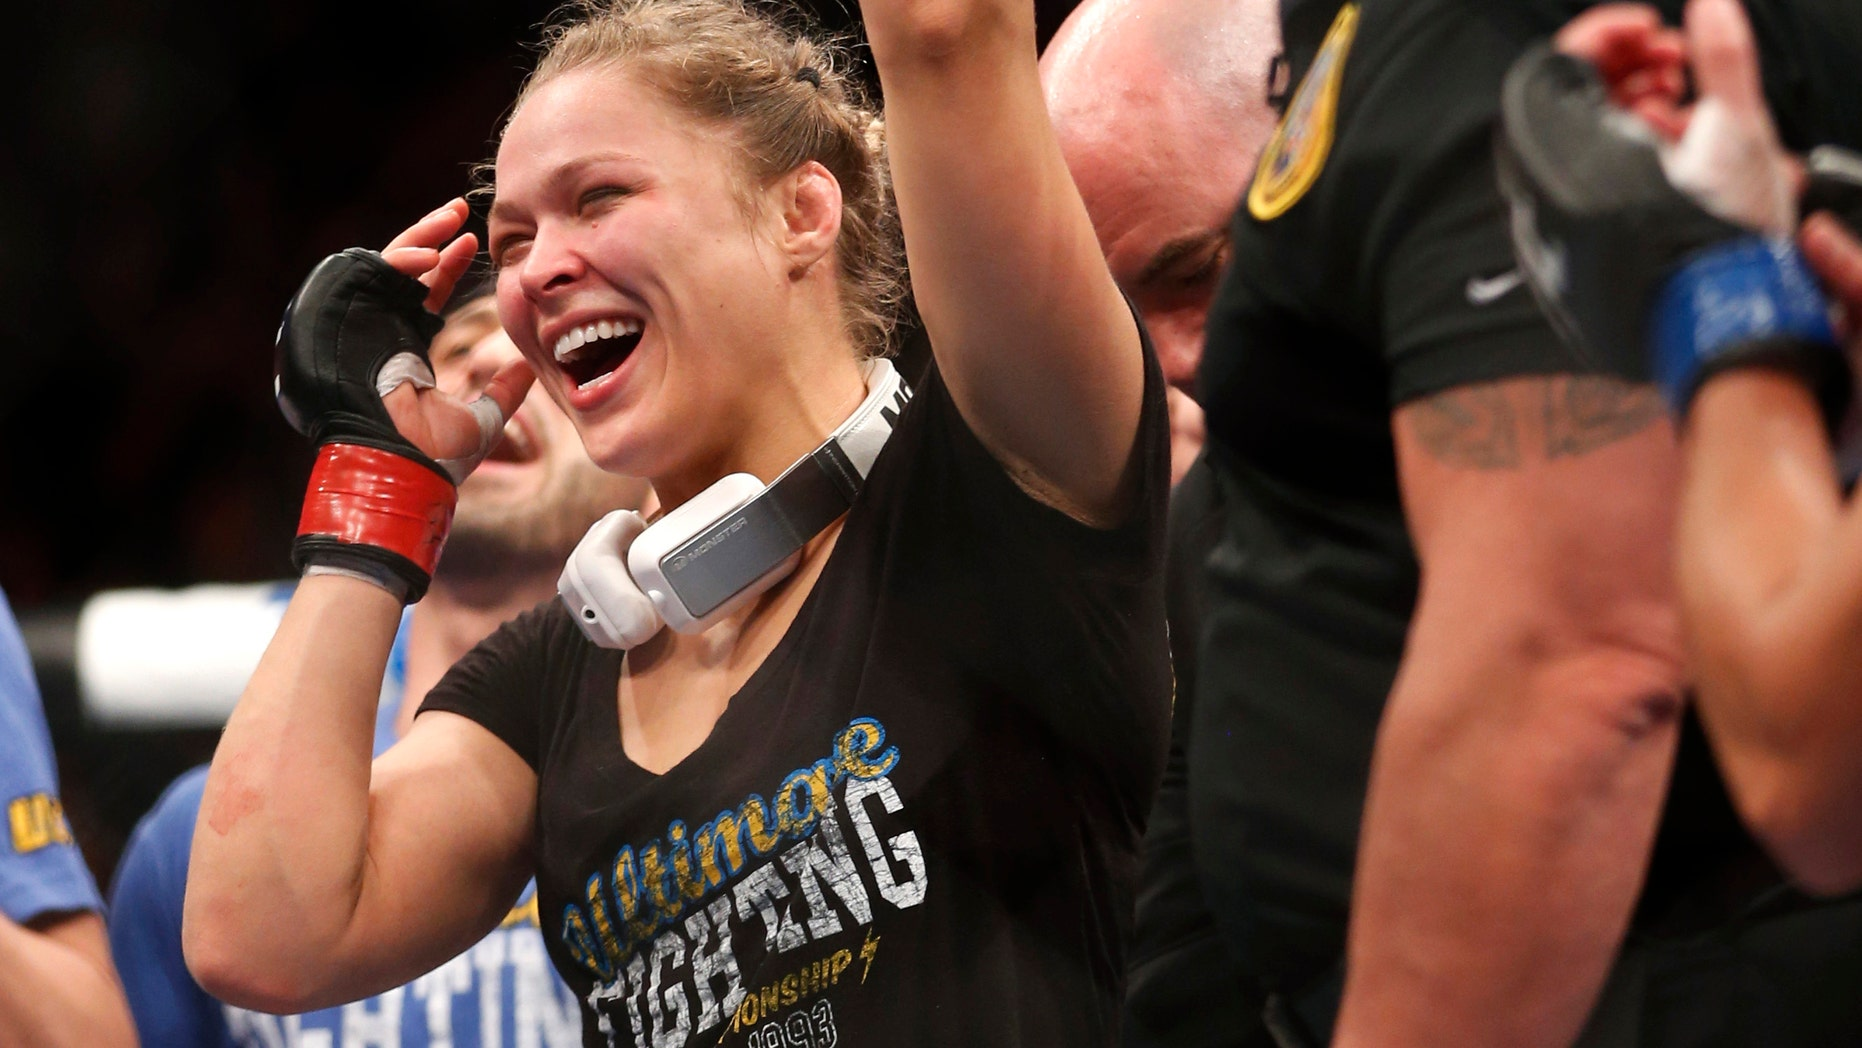 Ronda Rousey celebrates her win against Liz Carmouche after their UFC 157 women's bantamweight championship mixed martial arts match in Anaheim, Calif., Saturday, Feb. 23, 2013. Rousey won the first womenâs bout in UFC history, forcing Carmouche to tap out in the first round. (AP Photo/Jae C. Hong)